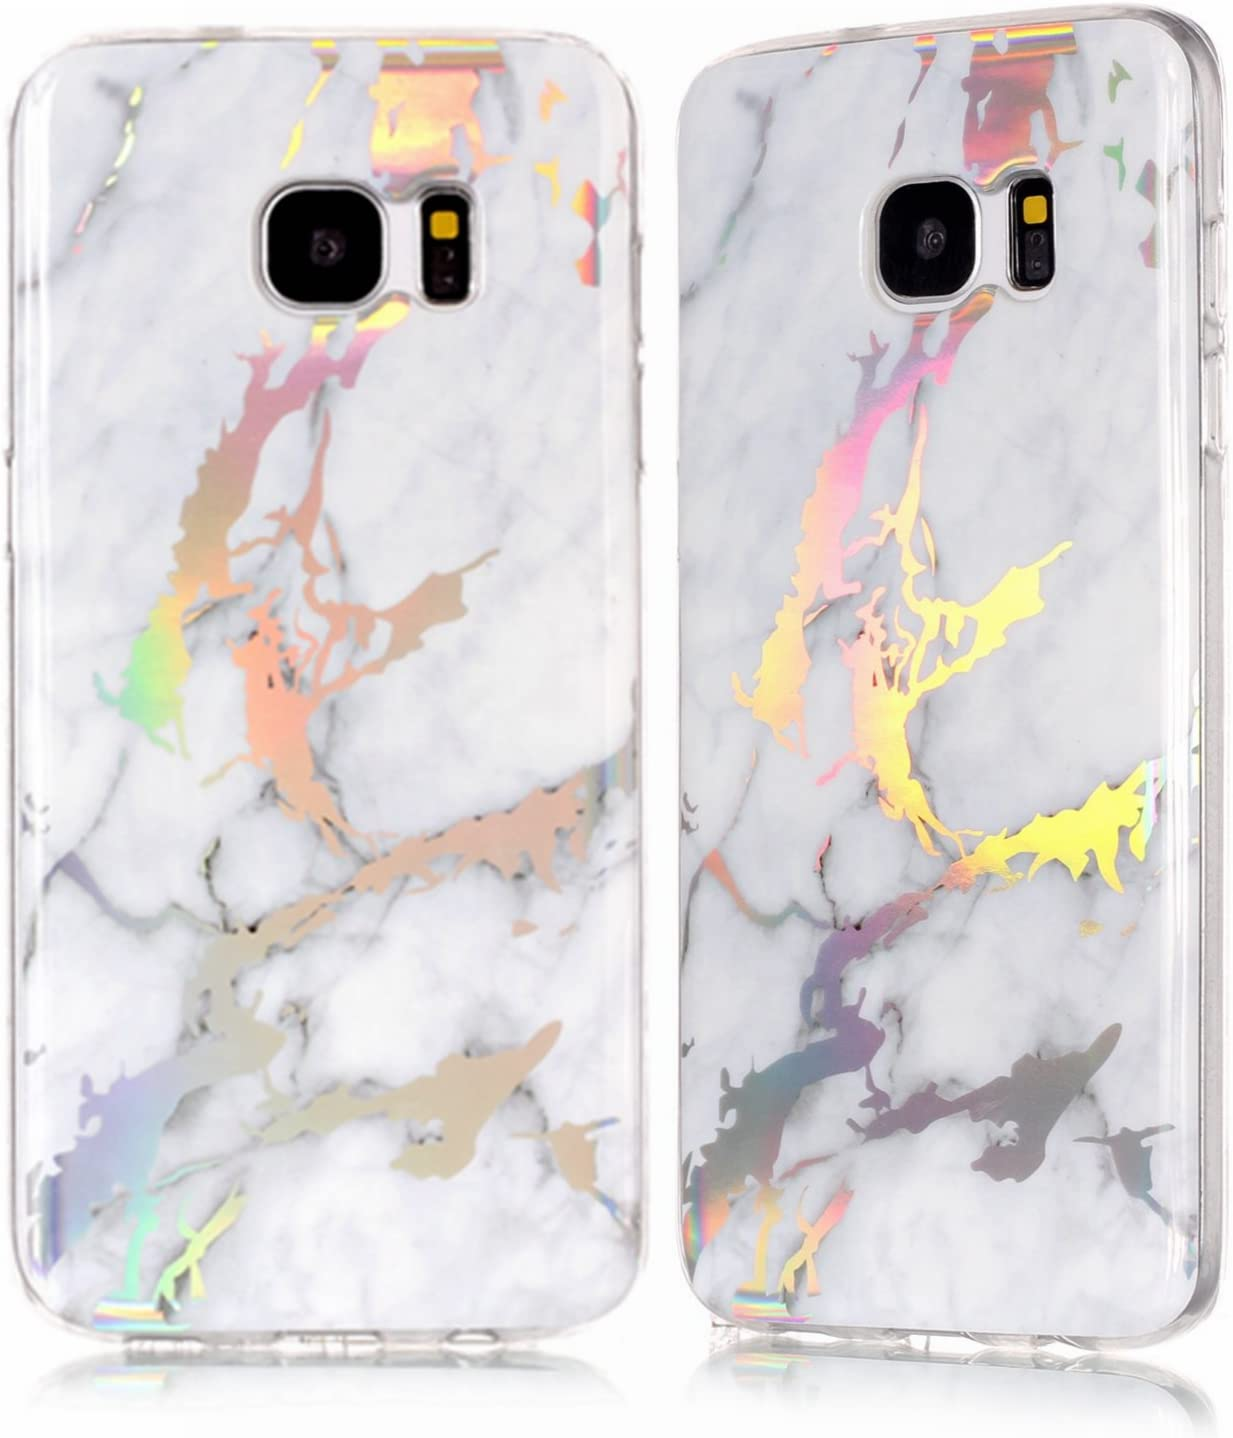 DAMONDY Galaxy S7 Edge Case,3D Shiny Marble Glitter Ultra Thin Slim Back Skin Full Body Protective Soft TPU Rubber Bumper Case Phone Cover for Samsung Galaxy S7 Edge-Whit